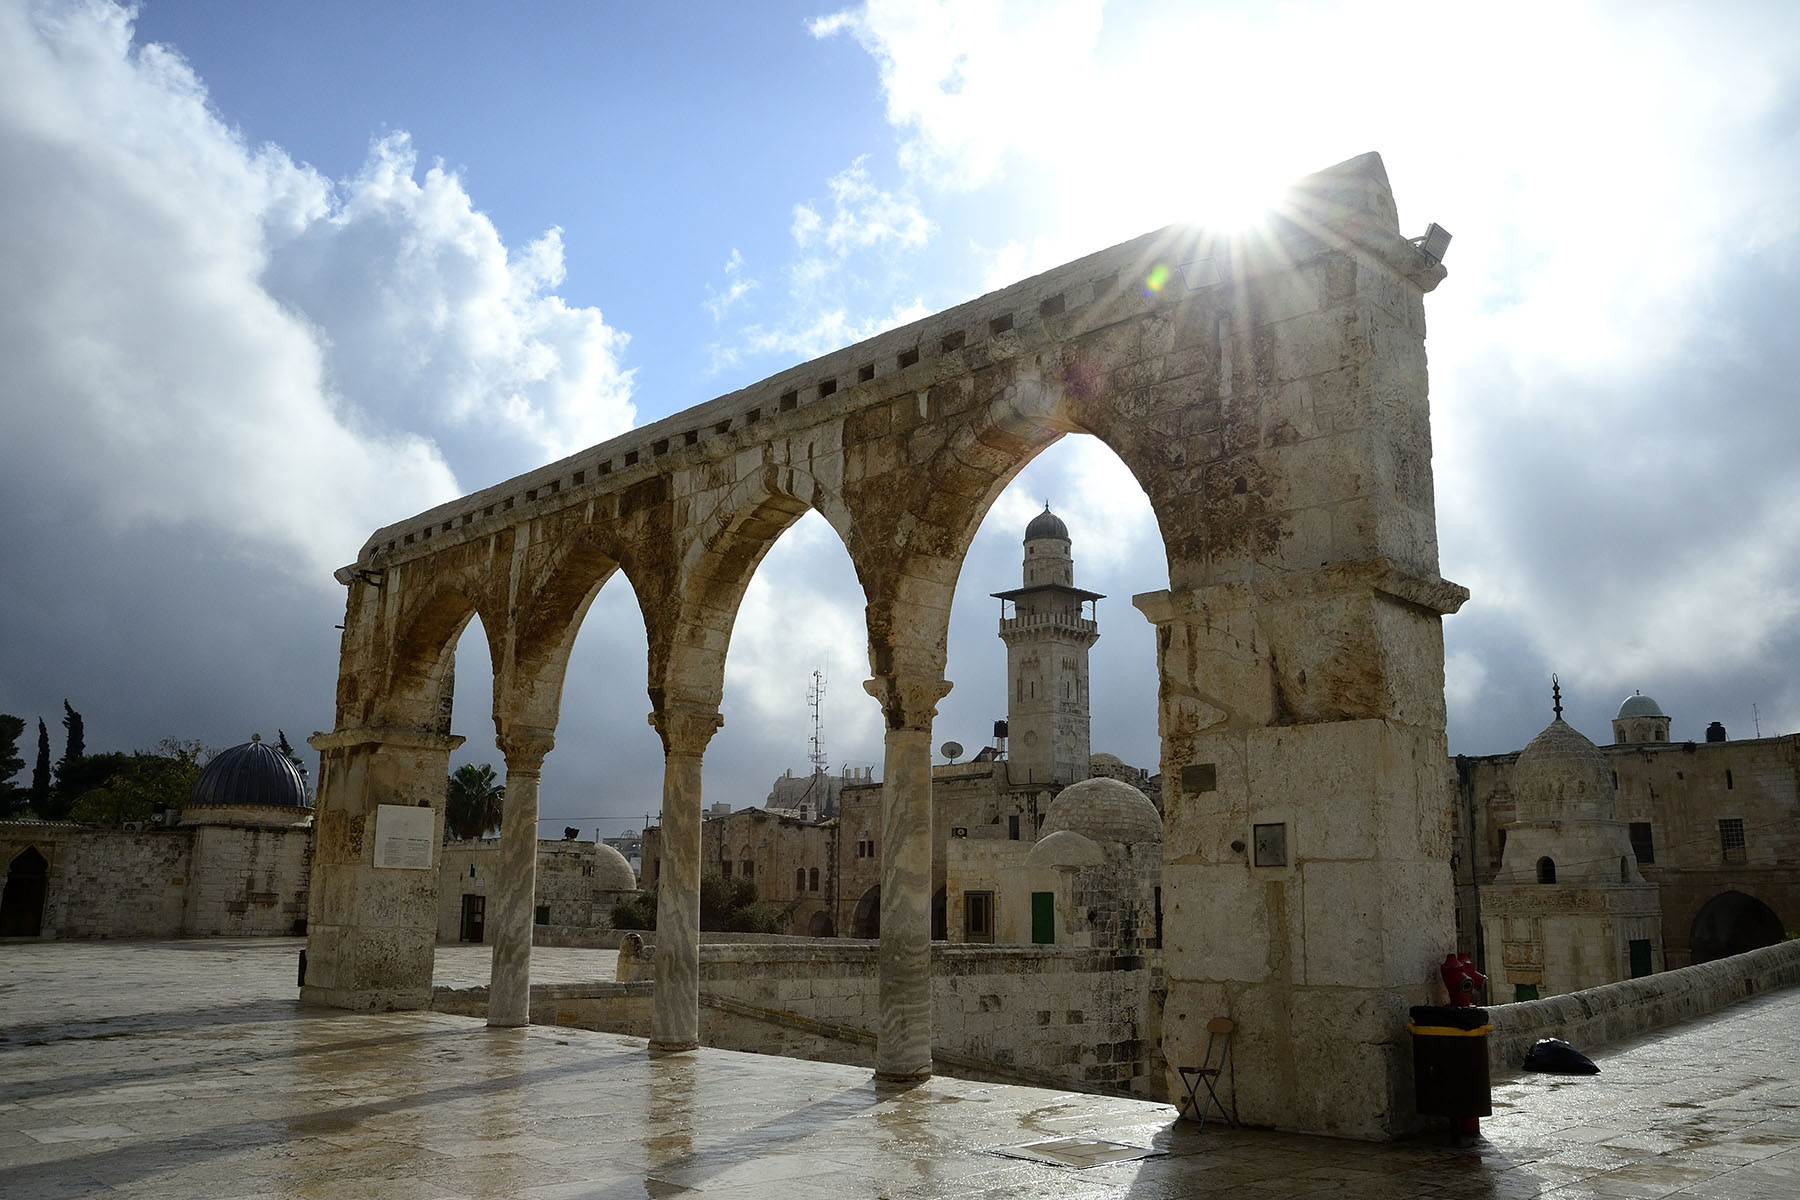 The Al-Aqsa Mosque is the third holiest site in Islam.